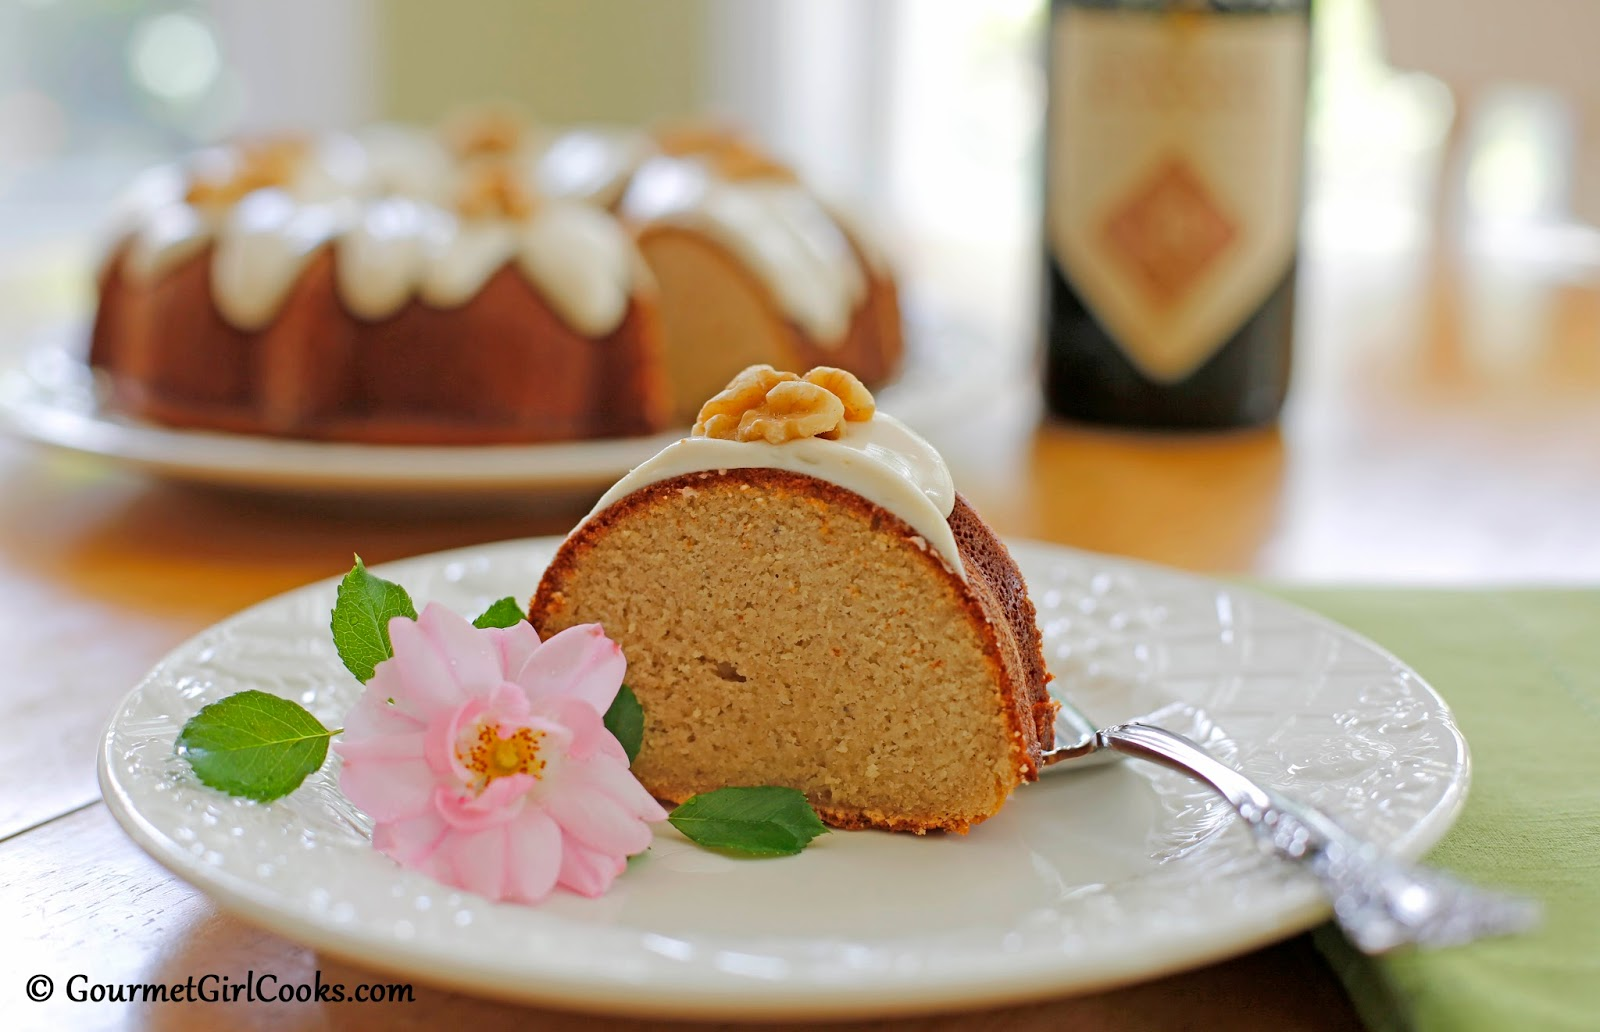 ... You Enjoy This Modified Version Of Sherry Bundt Cake Happy Download